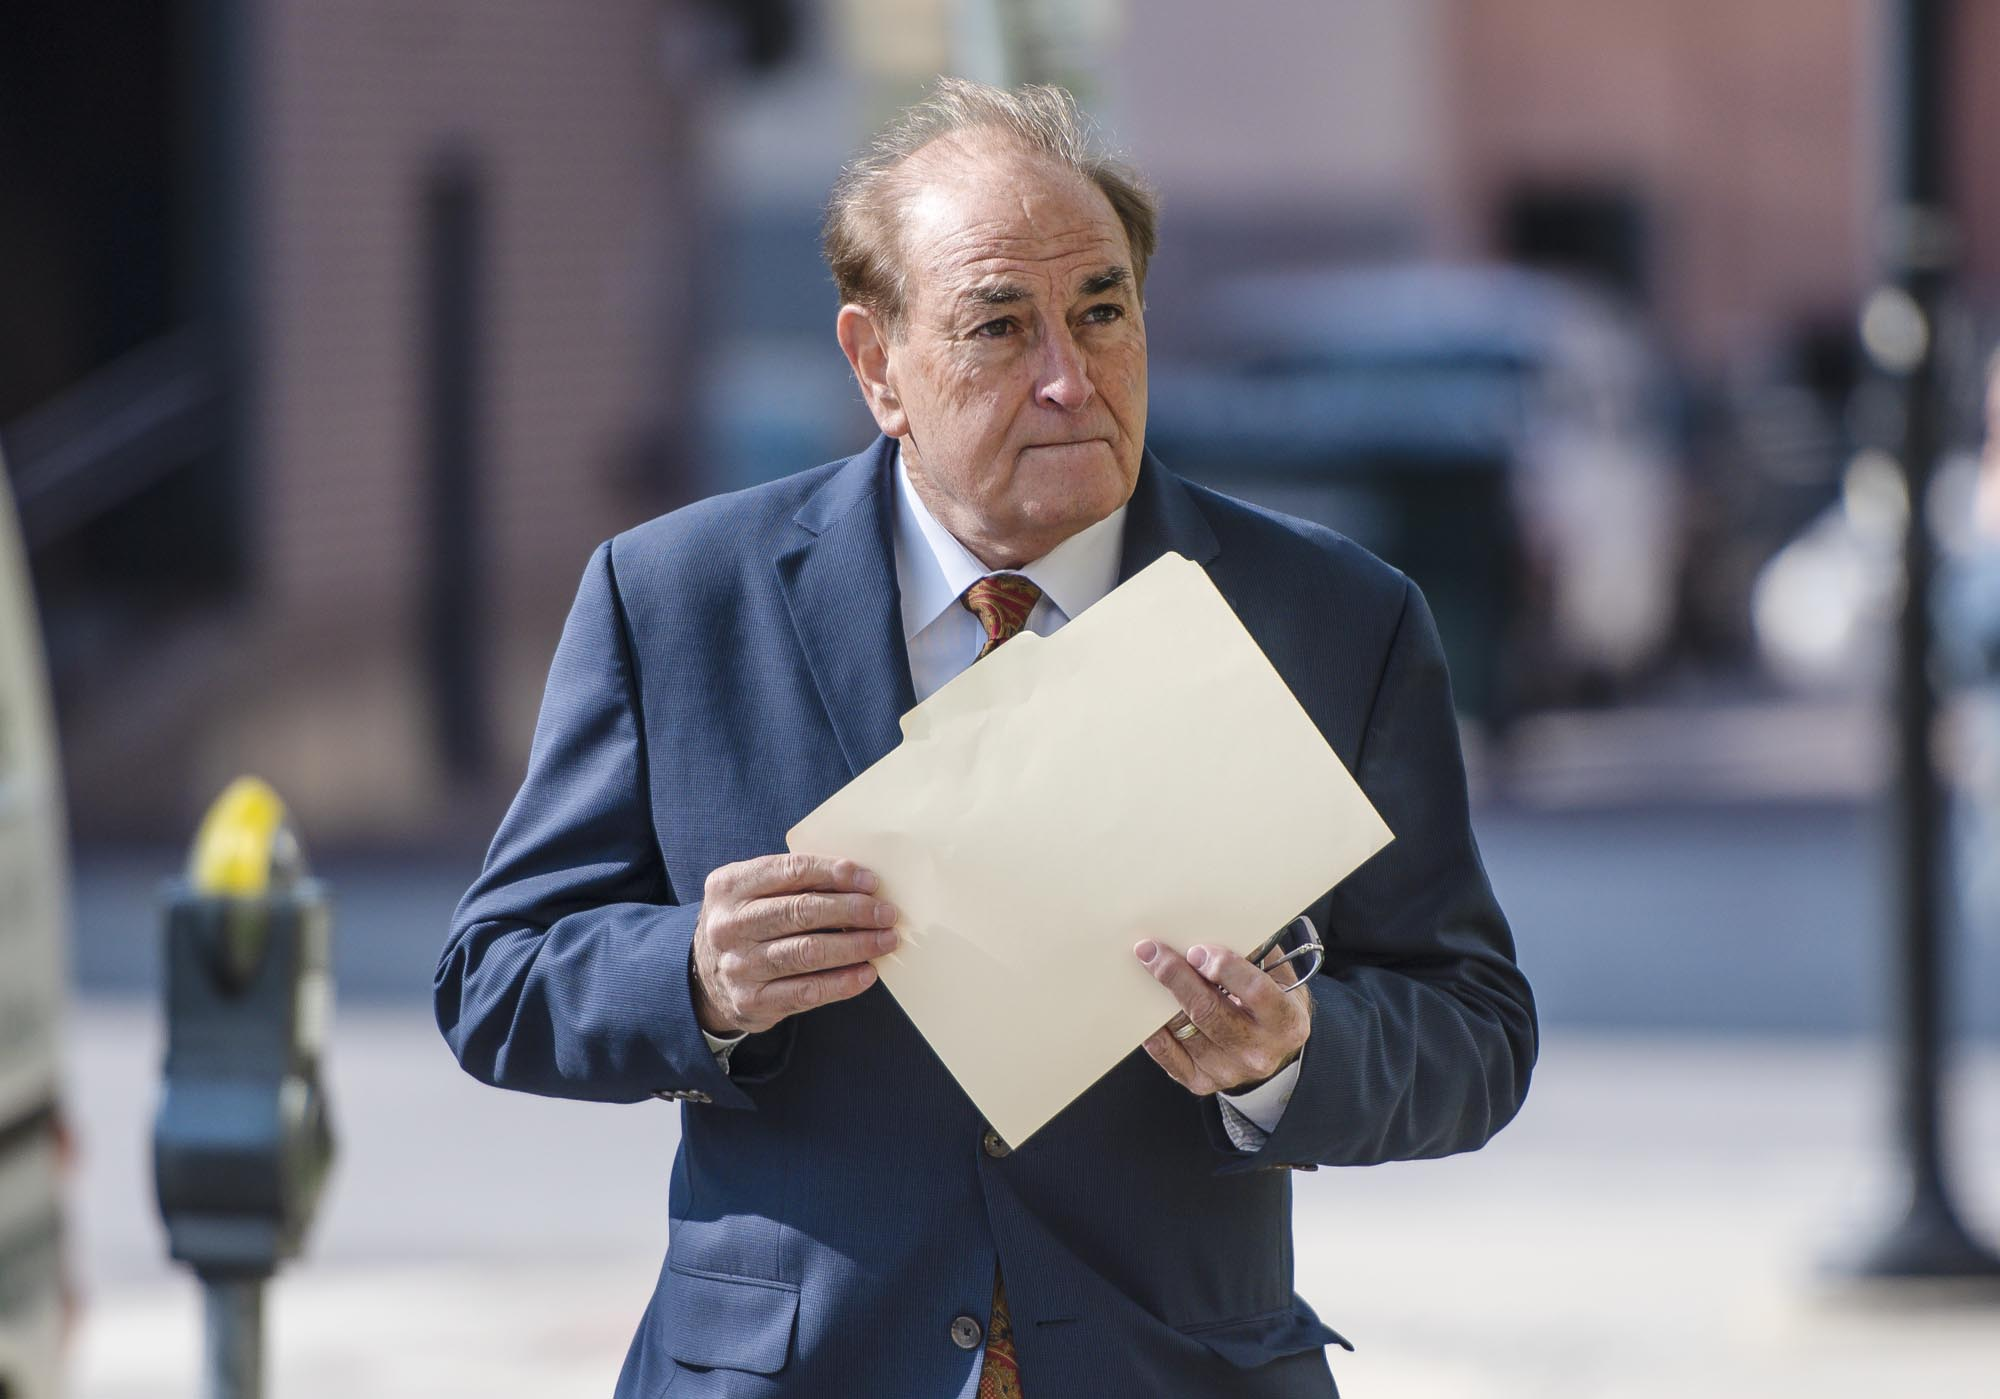 William Kelly, key adviser to Quiros in EB-5 fraud case, reaches plea deal for 3-year prison term - VTDigger